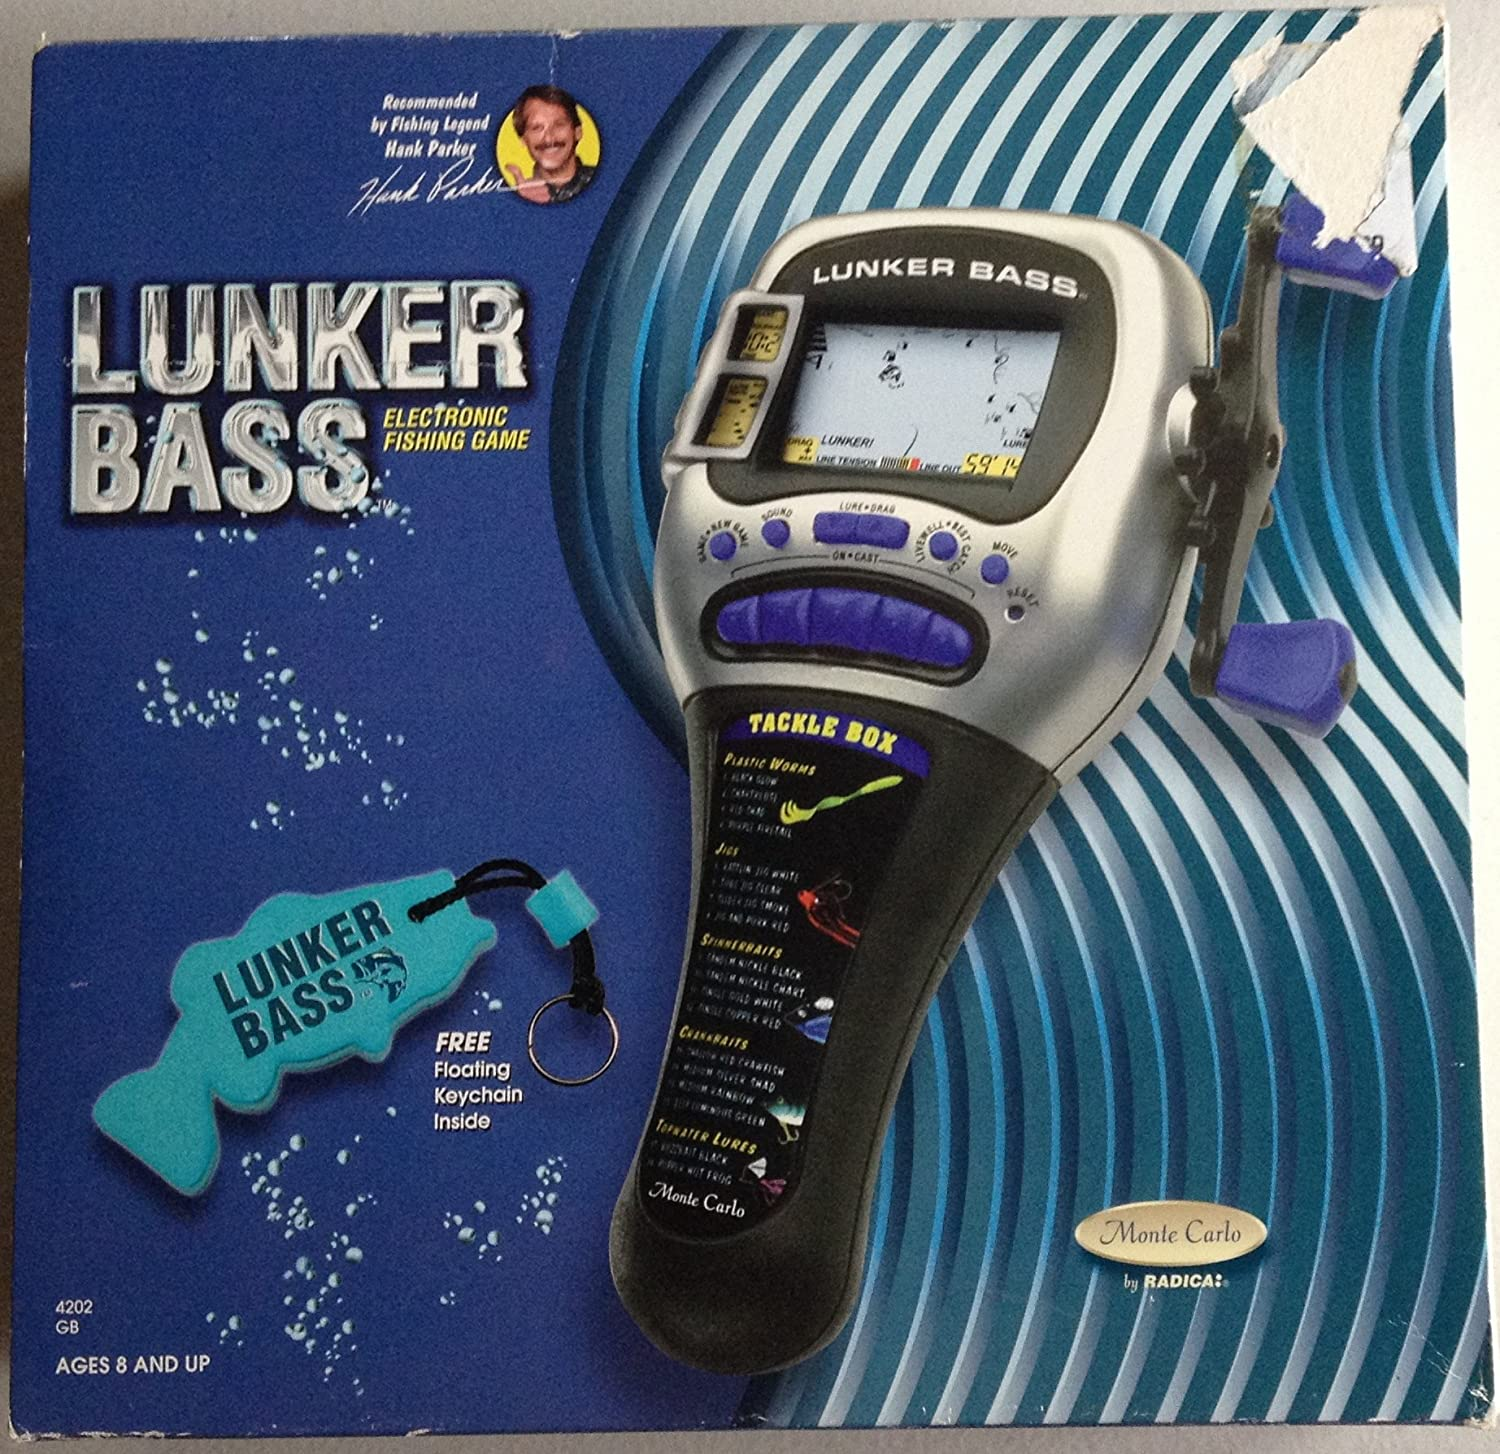 Radica Lunker Bass Fishing Handheld Game Radica Games